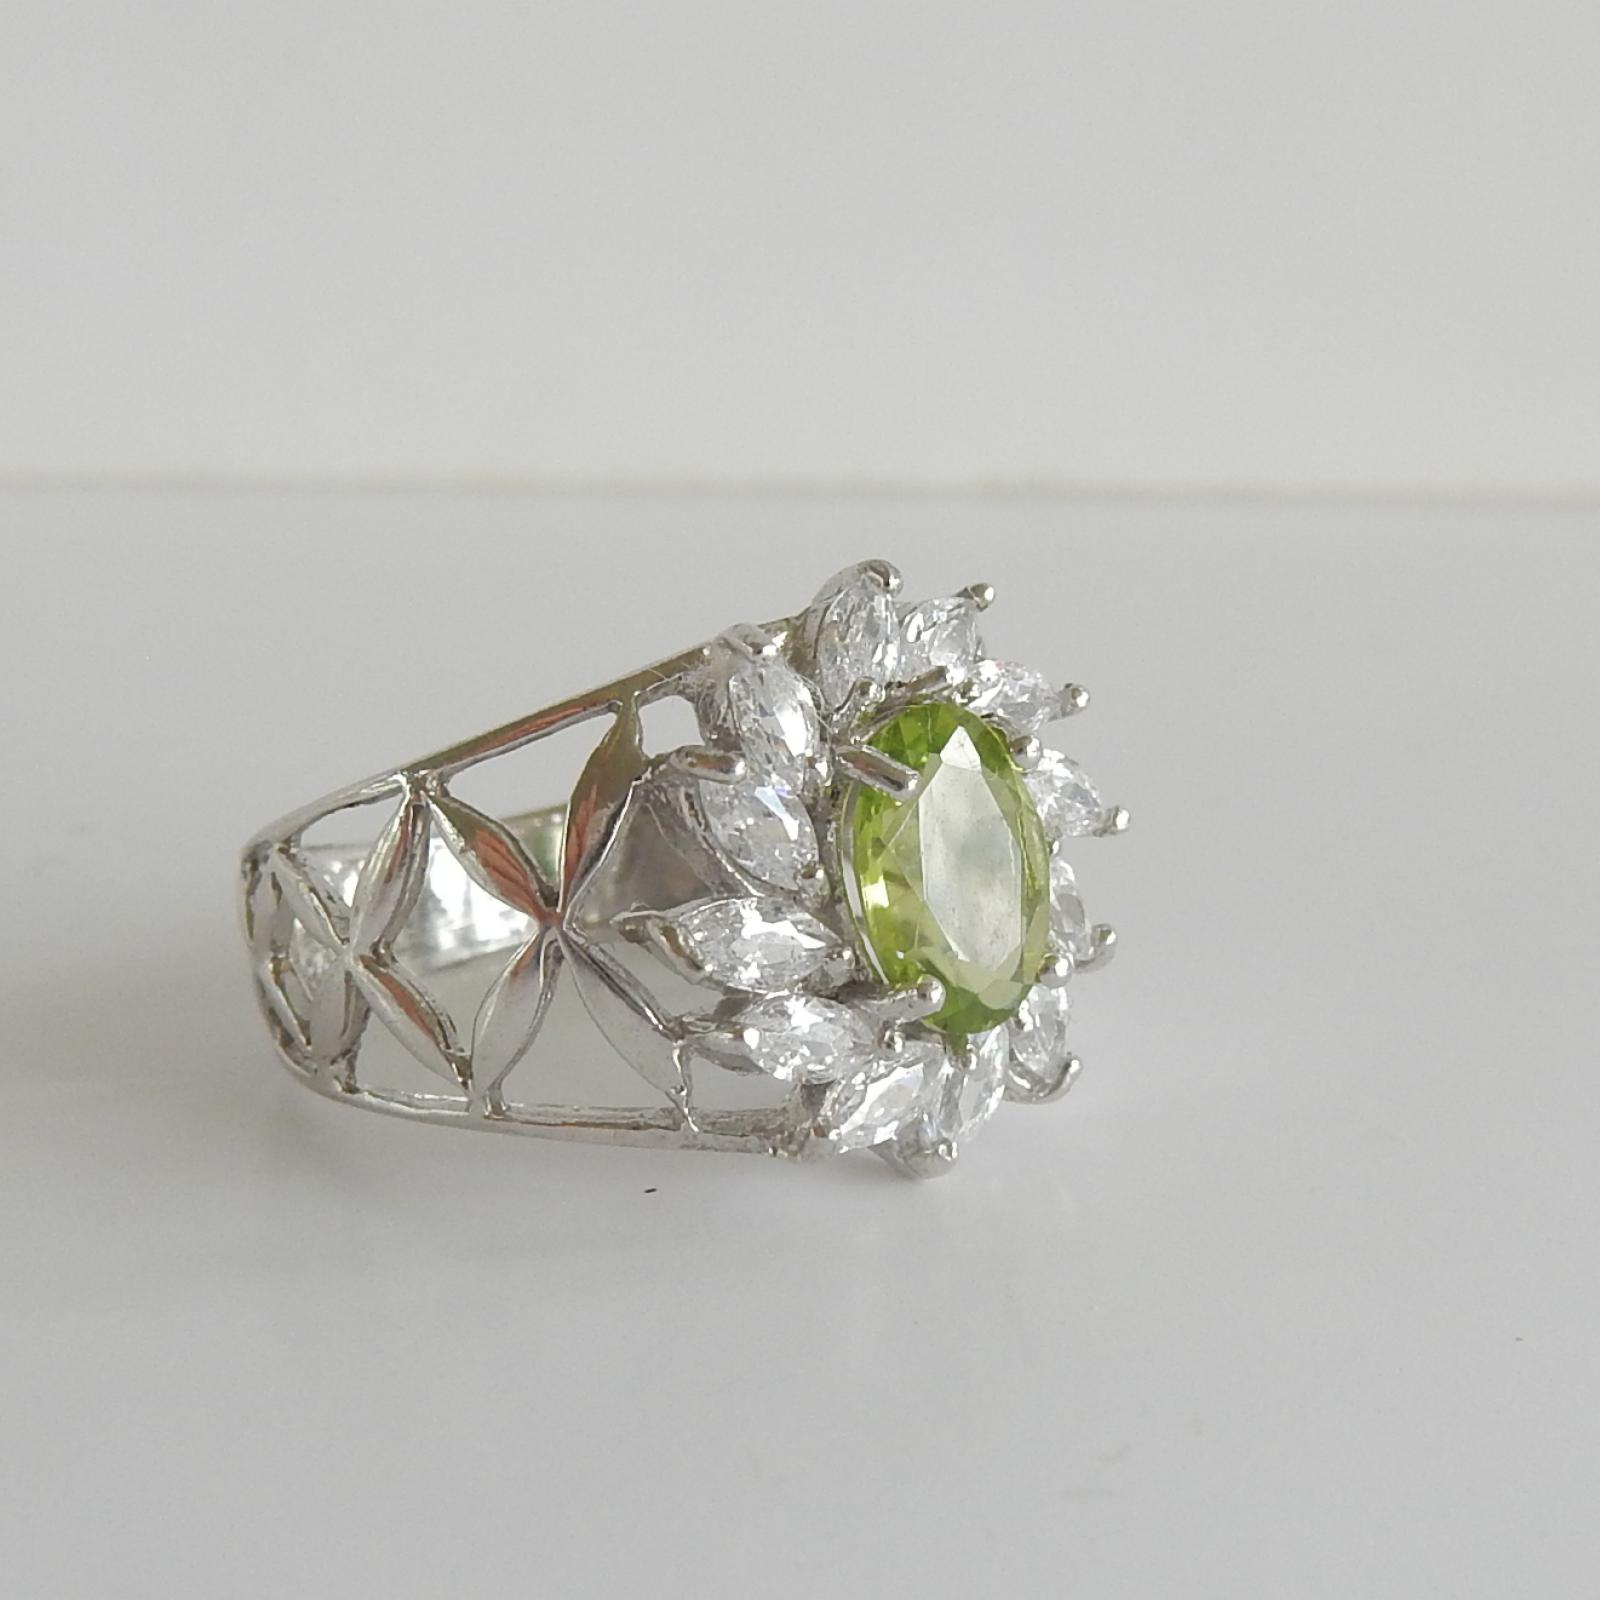 Photo of Solid Silver Peridot Ring